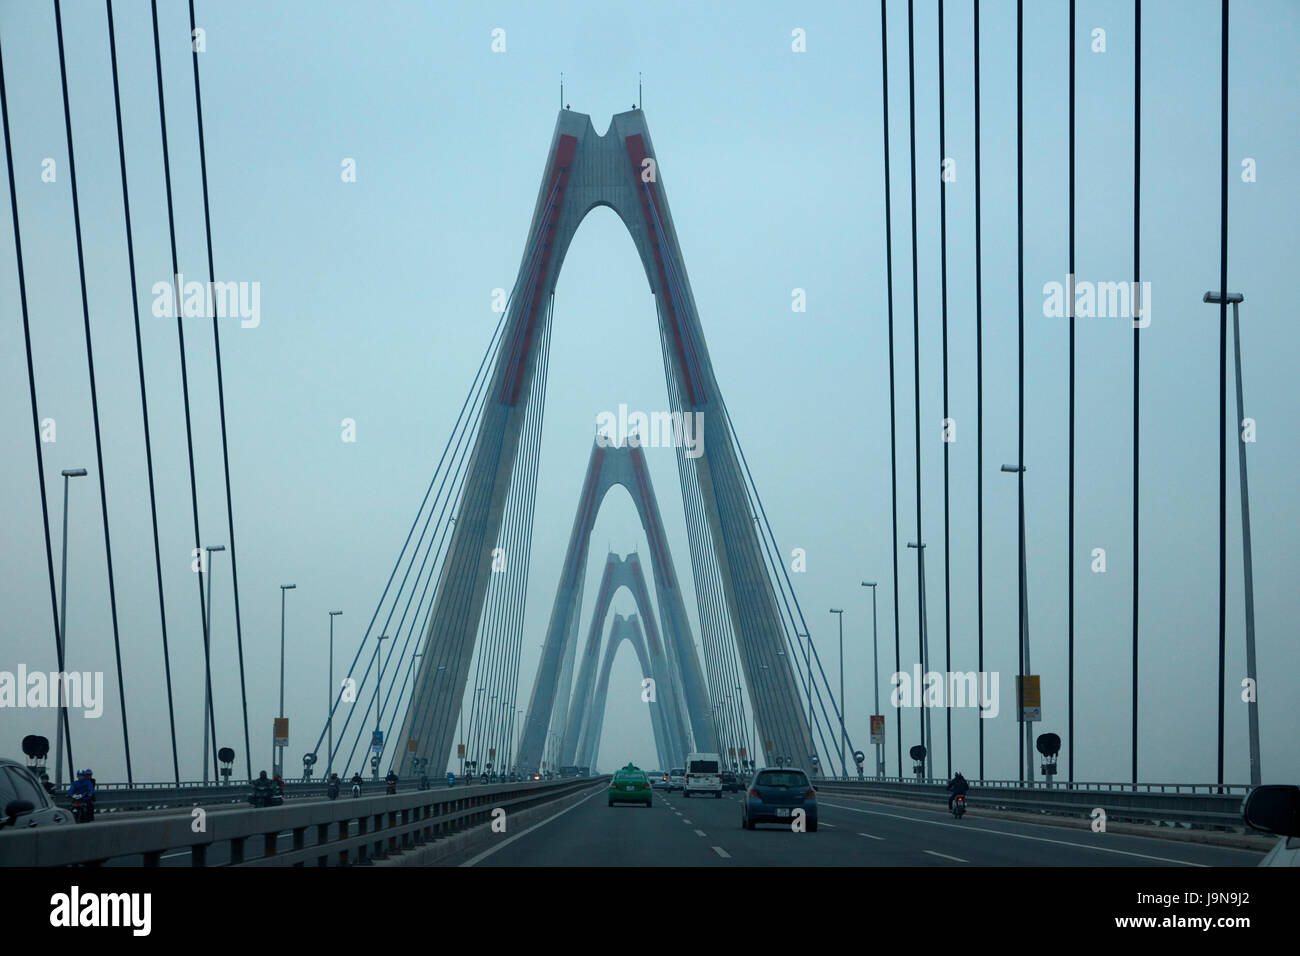 Nhat Tan Bridge (or Japan Friendship Bridge), over Red River, Hanoi, Vietnam - Stock Image